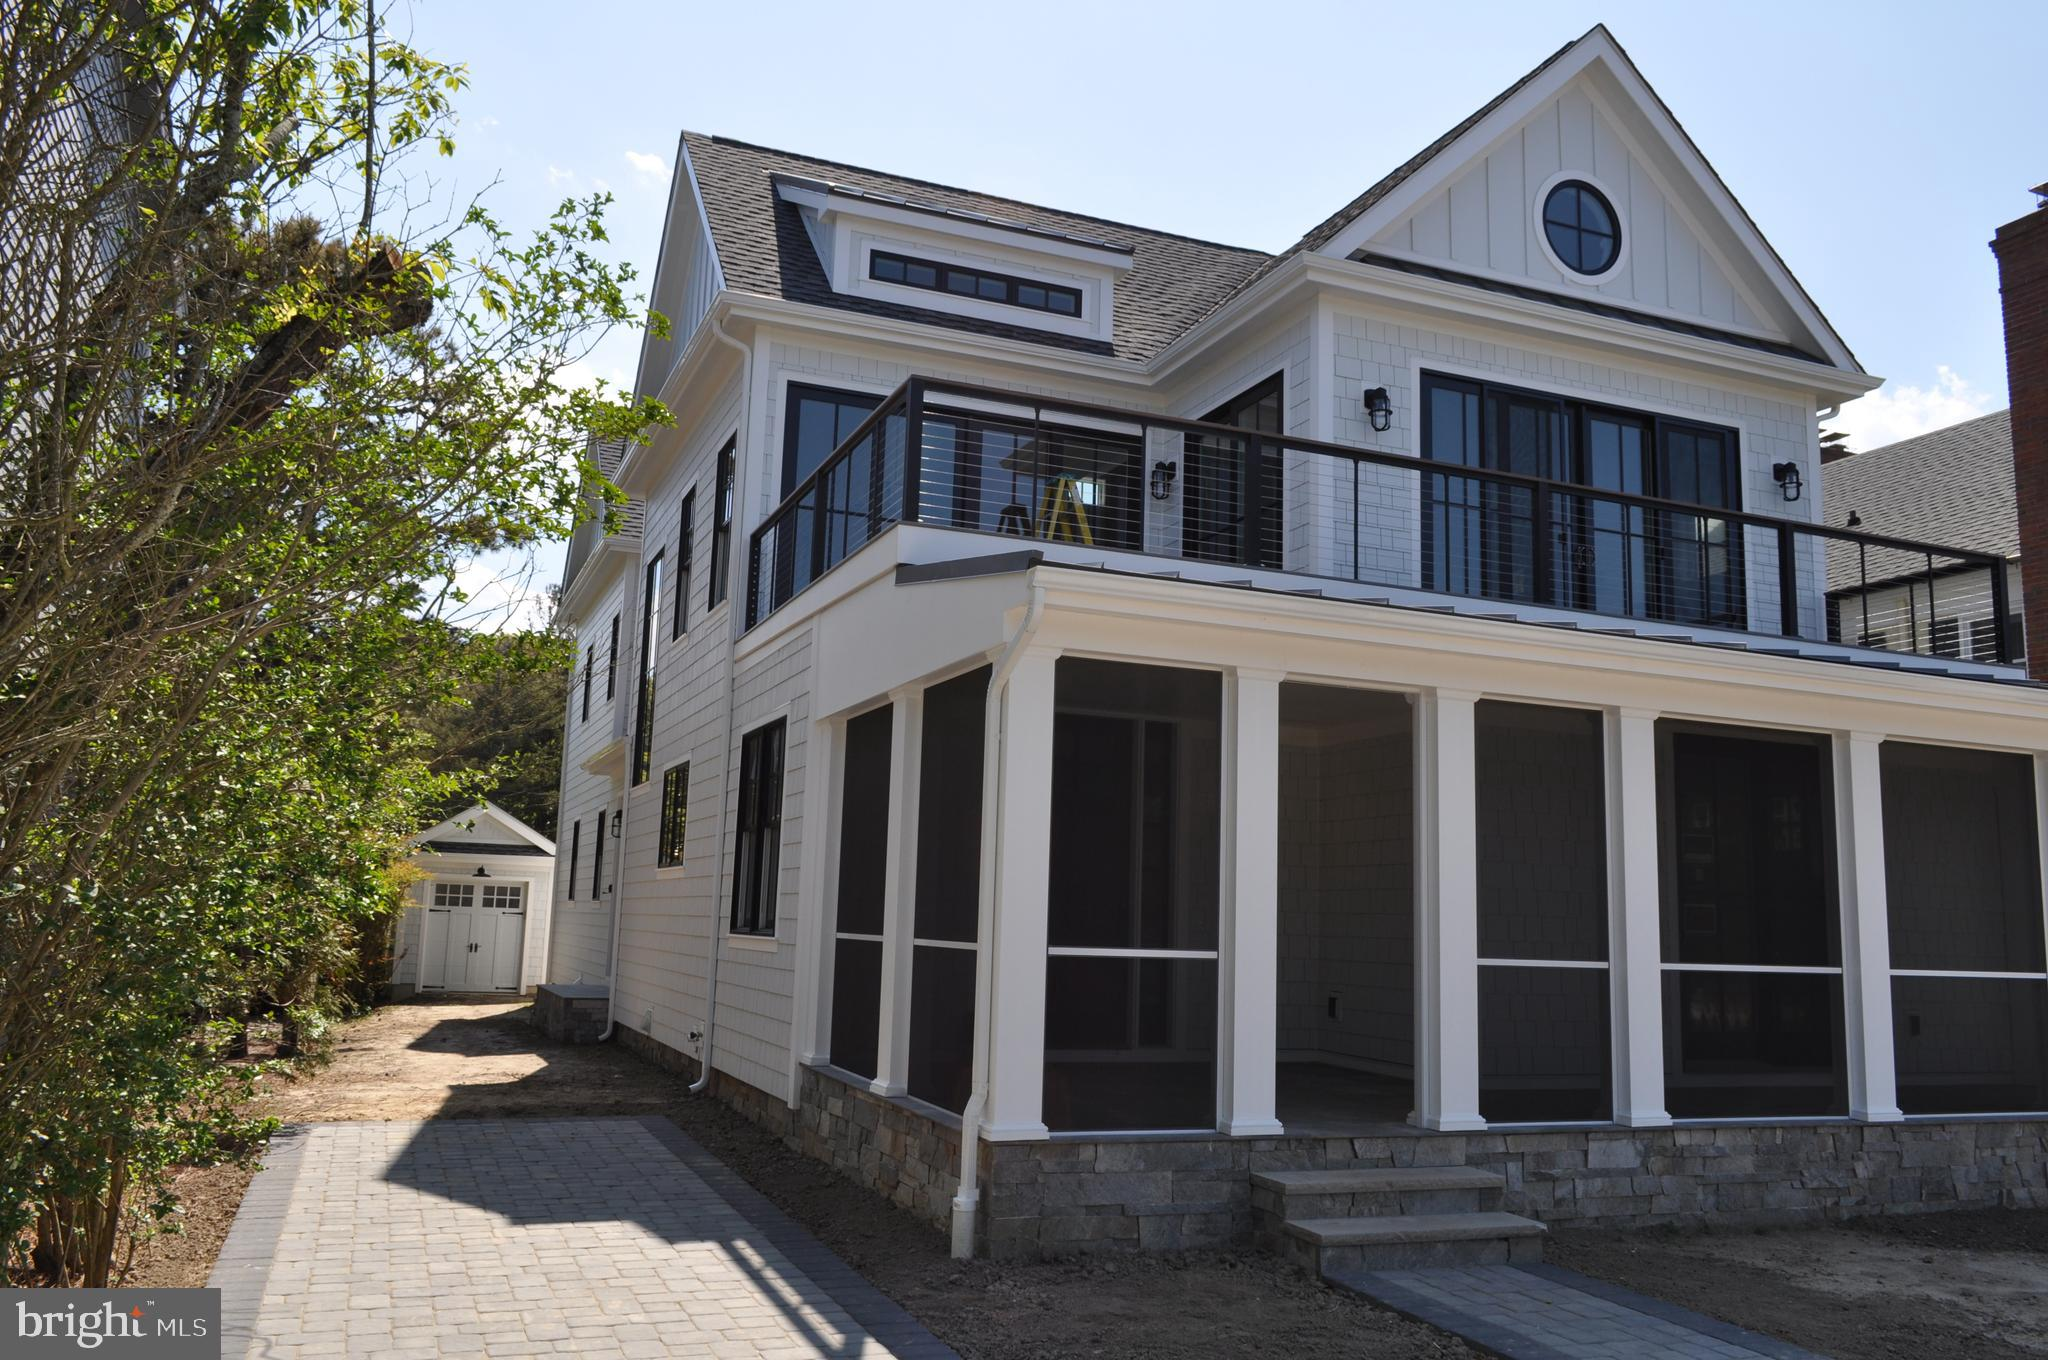 Oceanfront, brand new, top-of-the-line, 5 bedroom, 4 1/2 bath home located at 44 Surf Avenue in Rehoboth Beach.  Enjoy the ocean views, breezes, sound of waves and sunrises from this unique property that benefits from extremely wide dune protection and is not located in a flood zone.  Lot is 18 feet above sea level and no flood insurance is required. The inverted floor plan features a greatroom with beamed & shiplap vaulted ceiling, 2 owner's suites,  elevator, office, extensive wainscoting and shiplap millwork, fireplace, gourmet kitchen with huge island, custom cabinets, SubZero and Wolf appliances, Quartz countertops throughout, wide plank hardwood floors in all living areas and bedrooms, custom built-ins, screened porch, deck with cable railing, mudroom, basement with recreation room & lots of storage, detached bike/storage garage, exterior entrance to basement for beach toy storage, outside shower, 2x6 exterior walls, Andersen 400 series stormwatch impact windows & doors, and so much more. See attached list of features and construction specifications. Prime beachfront location and just a short walk to boardwalk, shops, restaurants, nightlife, and everything Rehoboth has to offer.  Ready for summer of 2020 enjoyment.